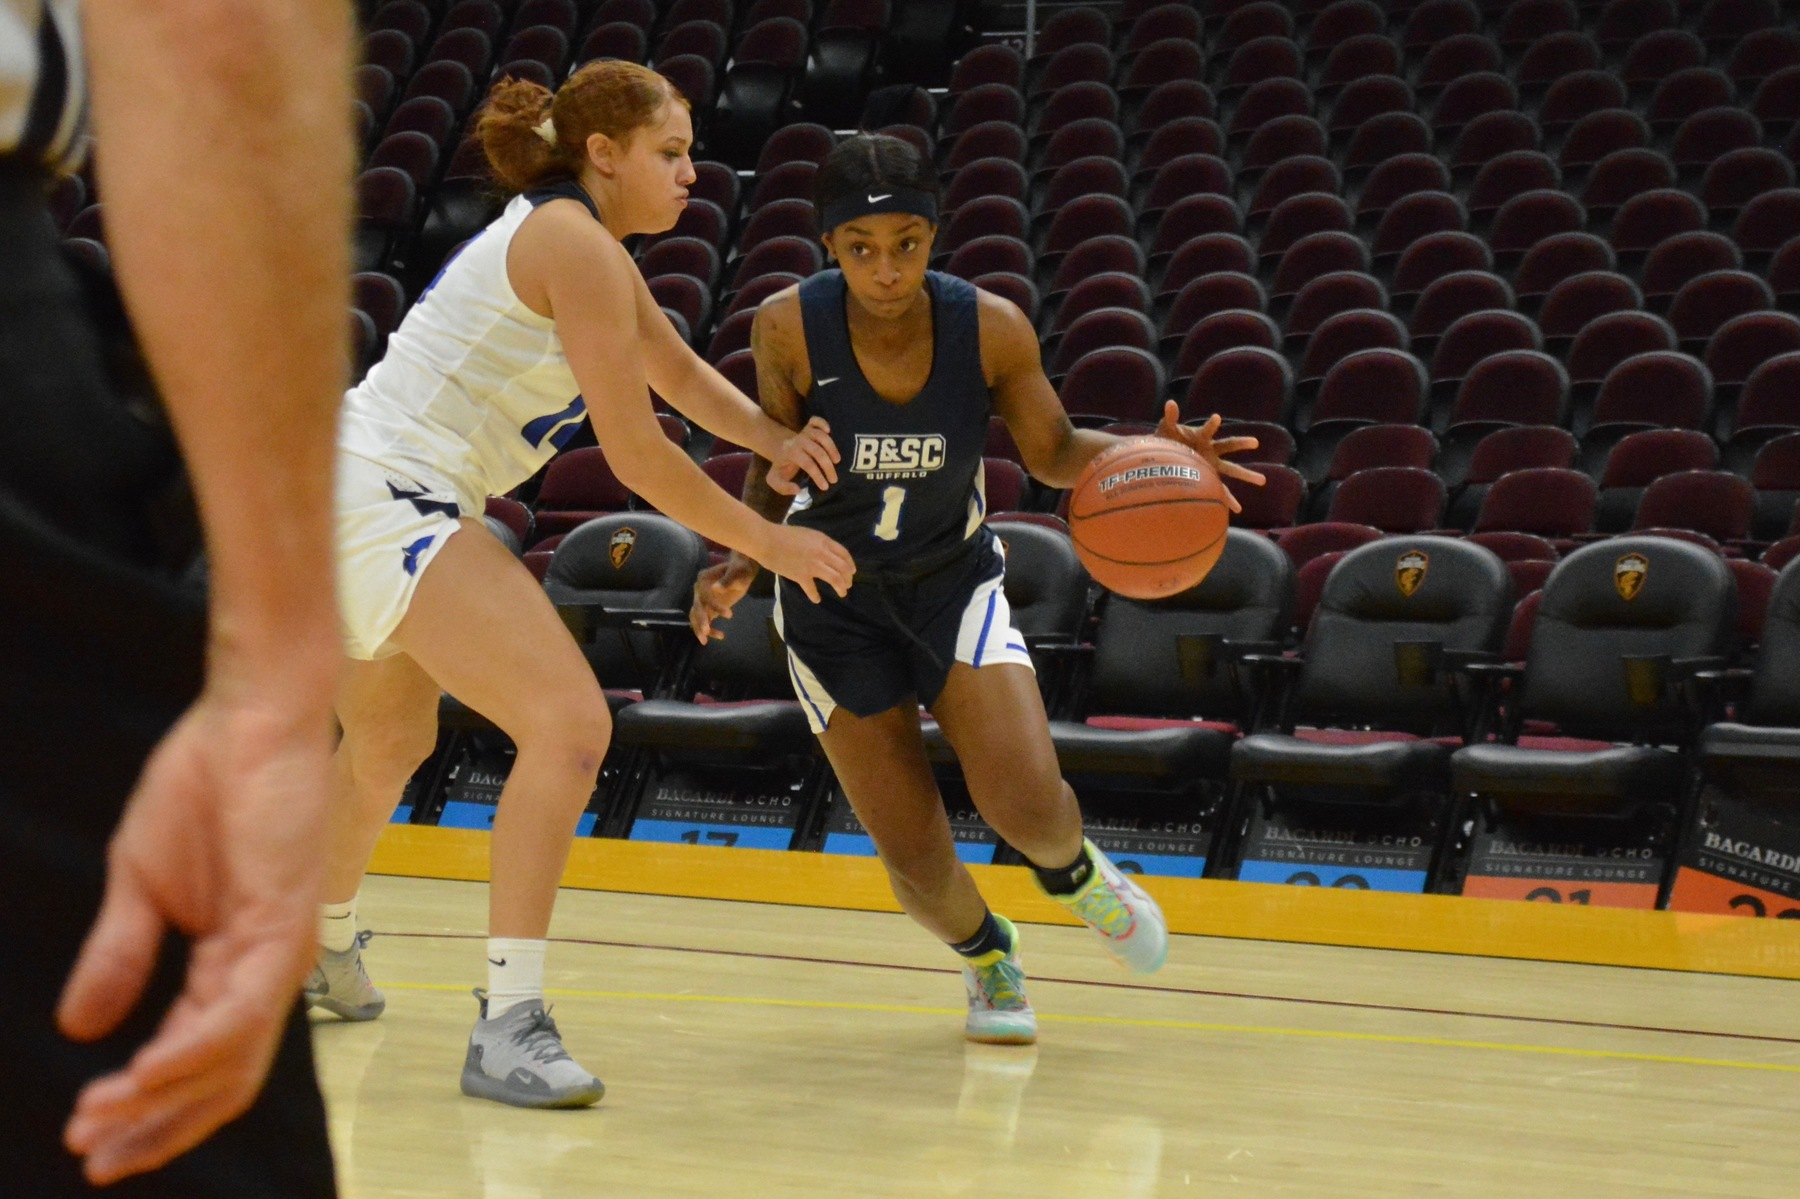 Perry, Women's Basketball Picks up Program's First Win, 69-64 over Fisher